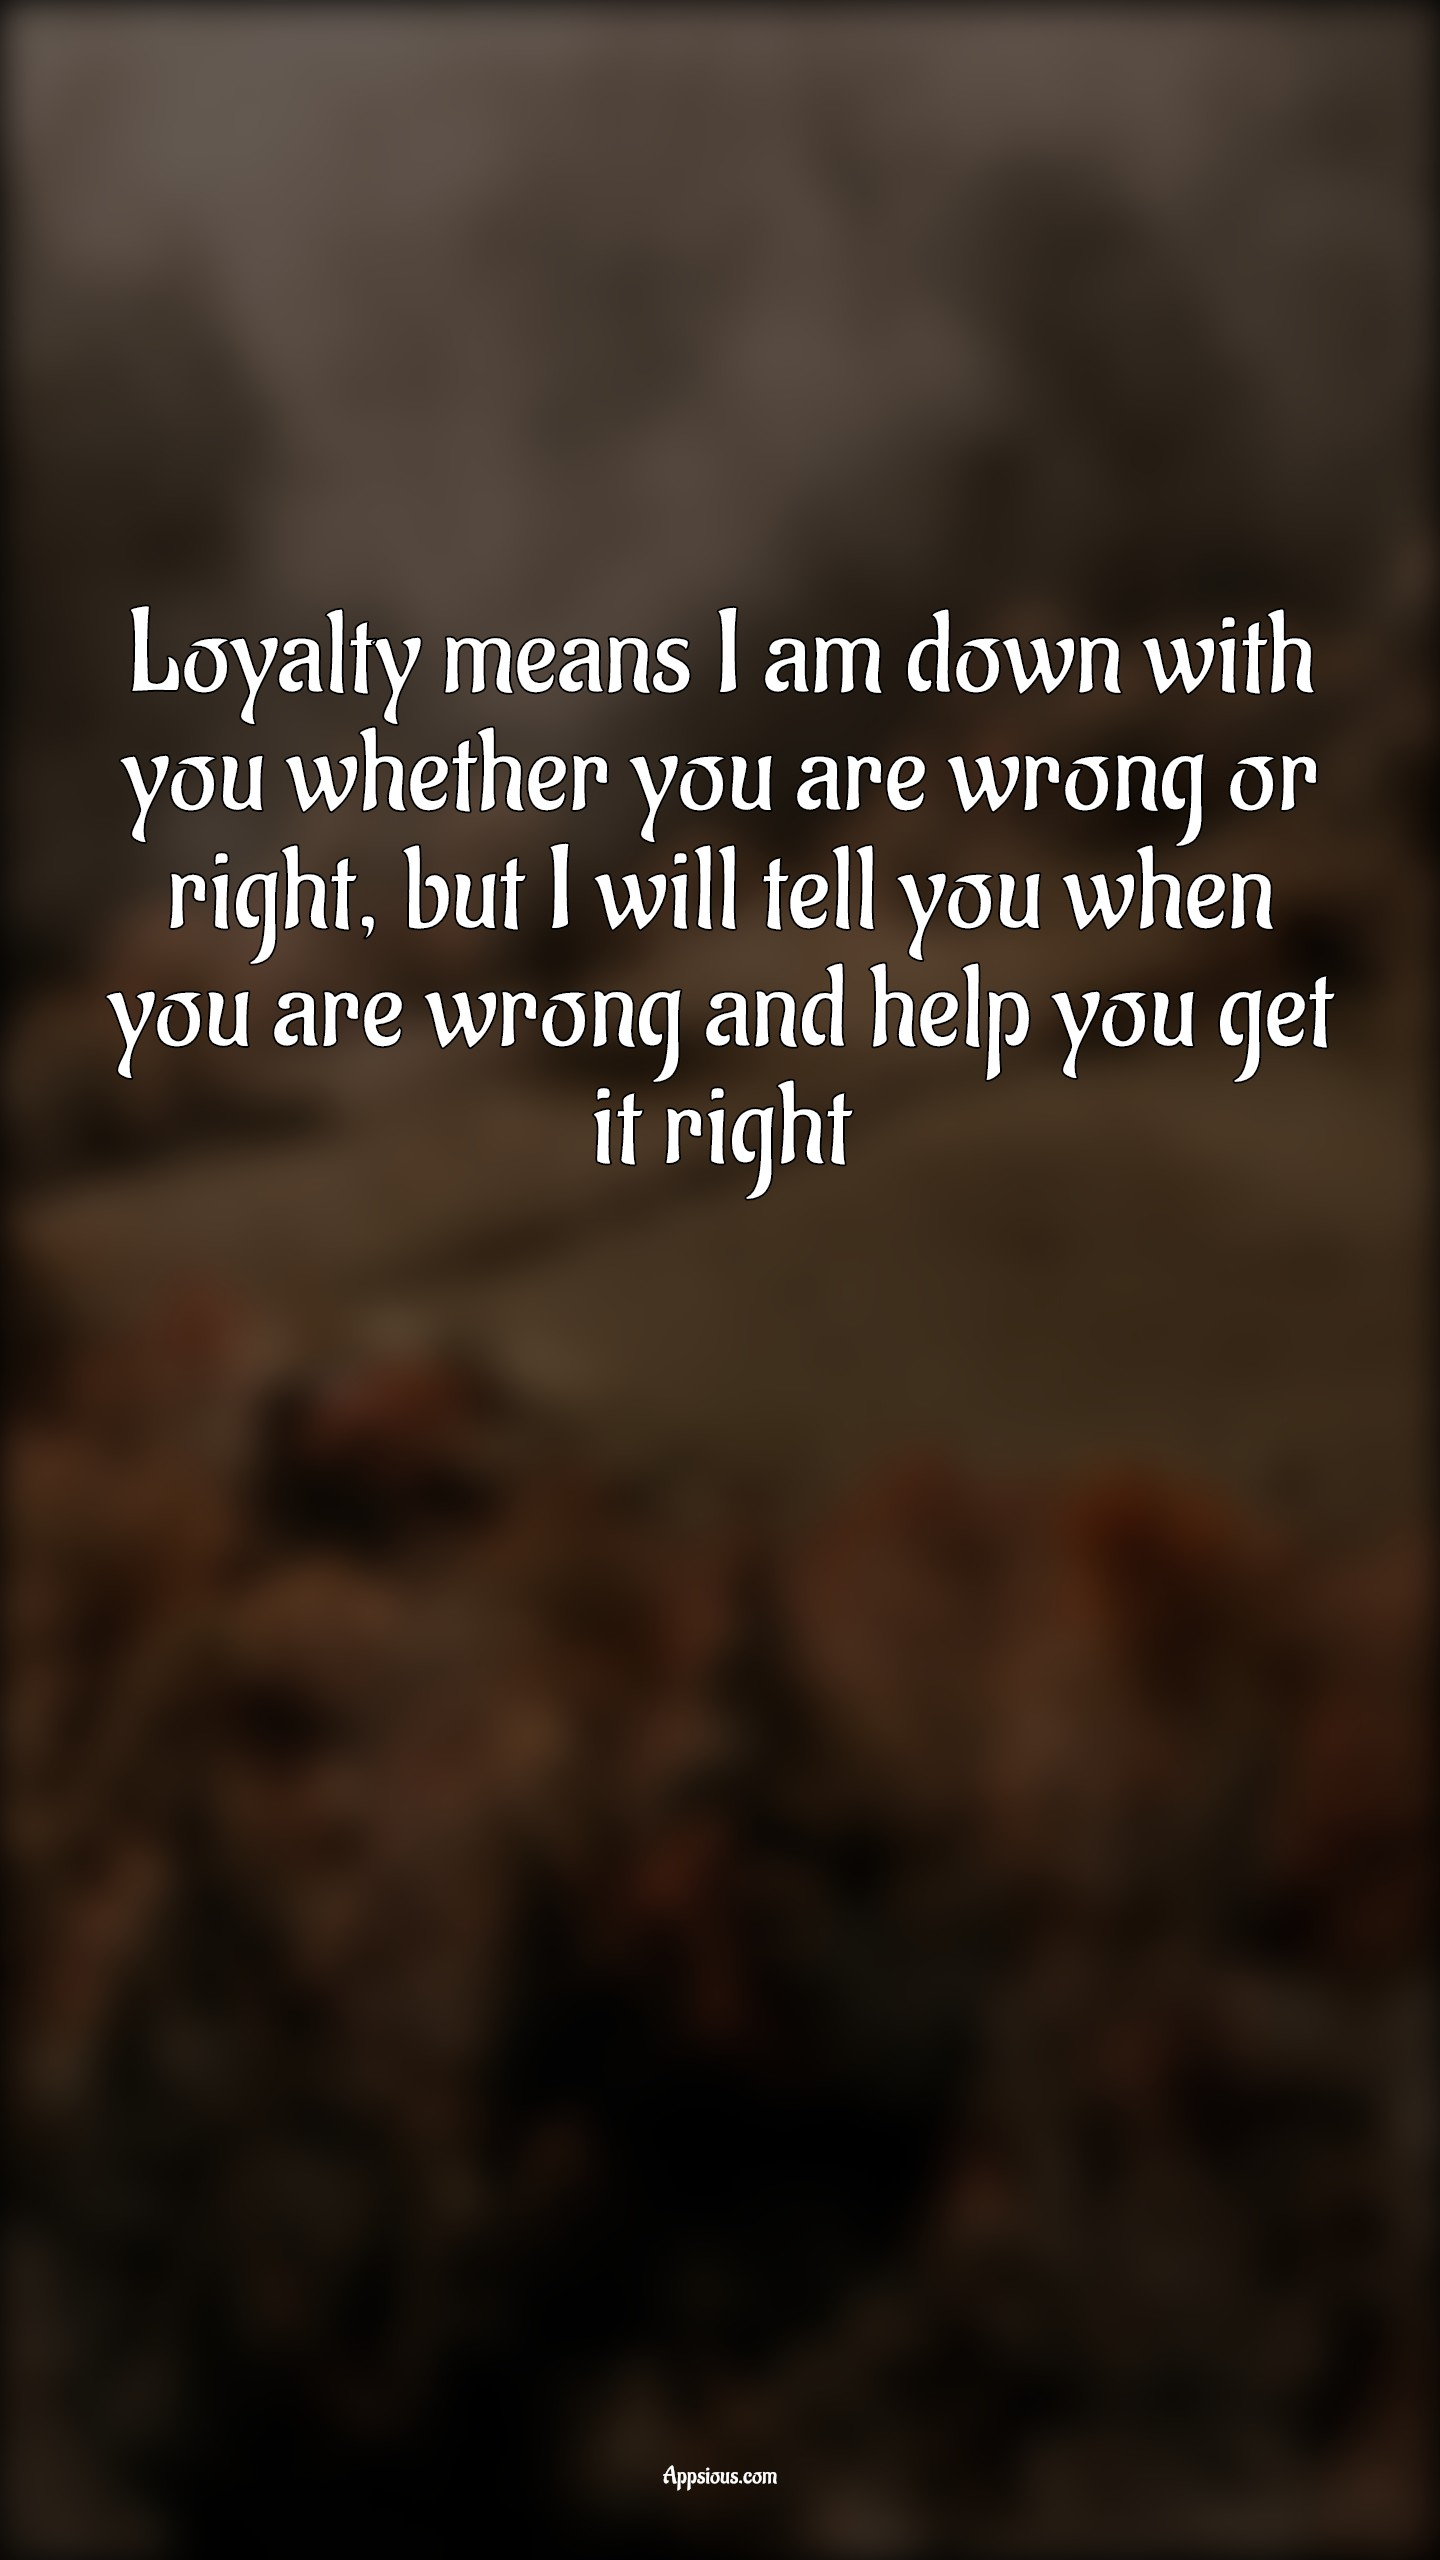 Loyalty means I am down with you whether you are wrong or right, but I will tell you when you are wrong and help you get it right